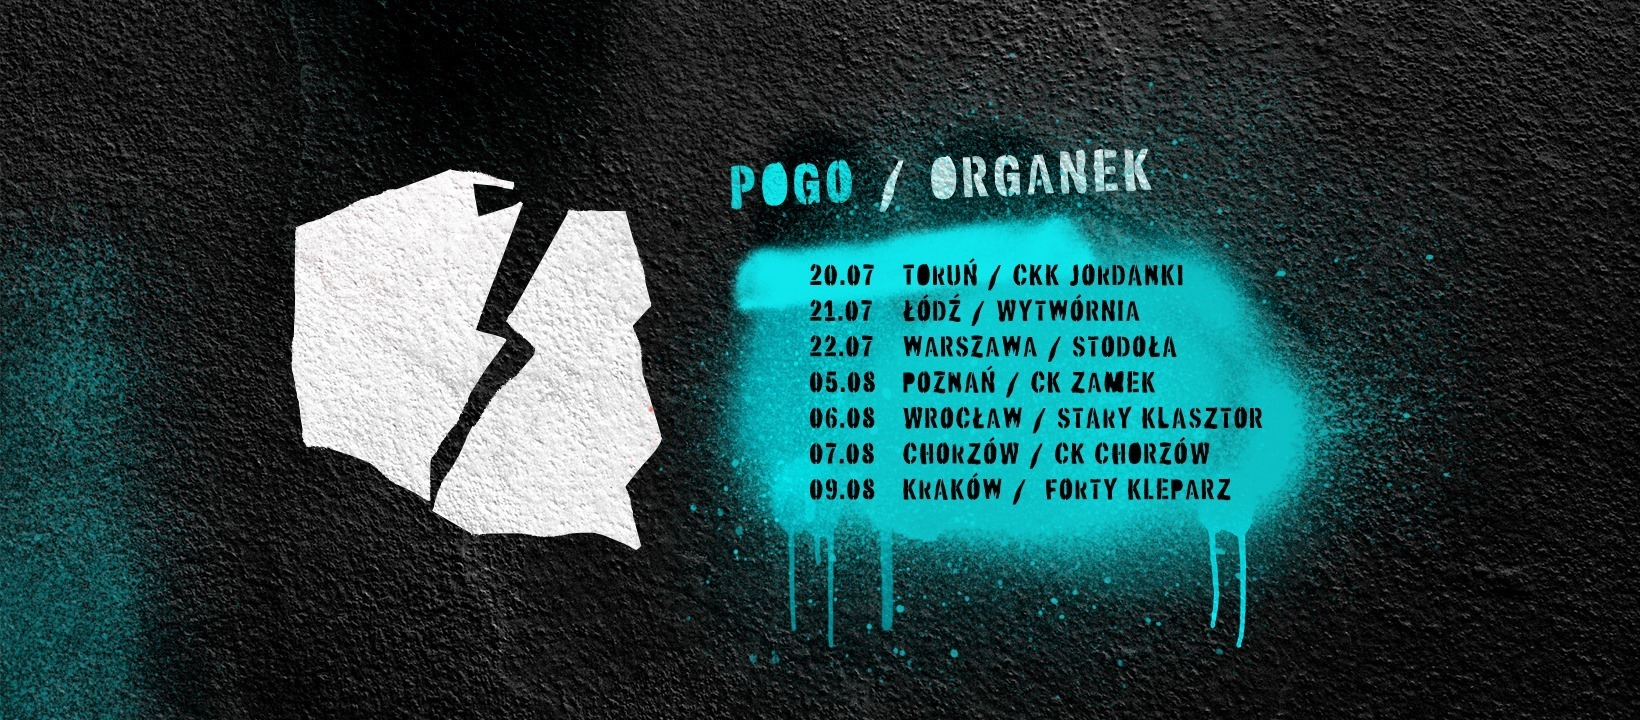 ØRGANEK - POGO MINI TOUR 2020